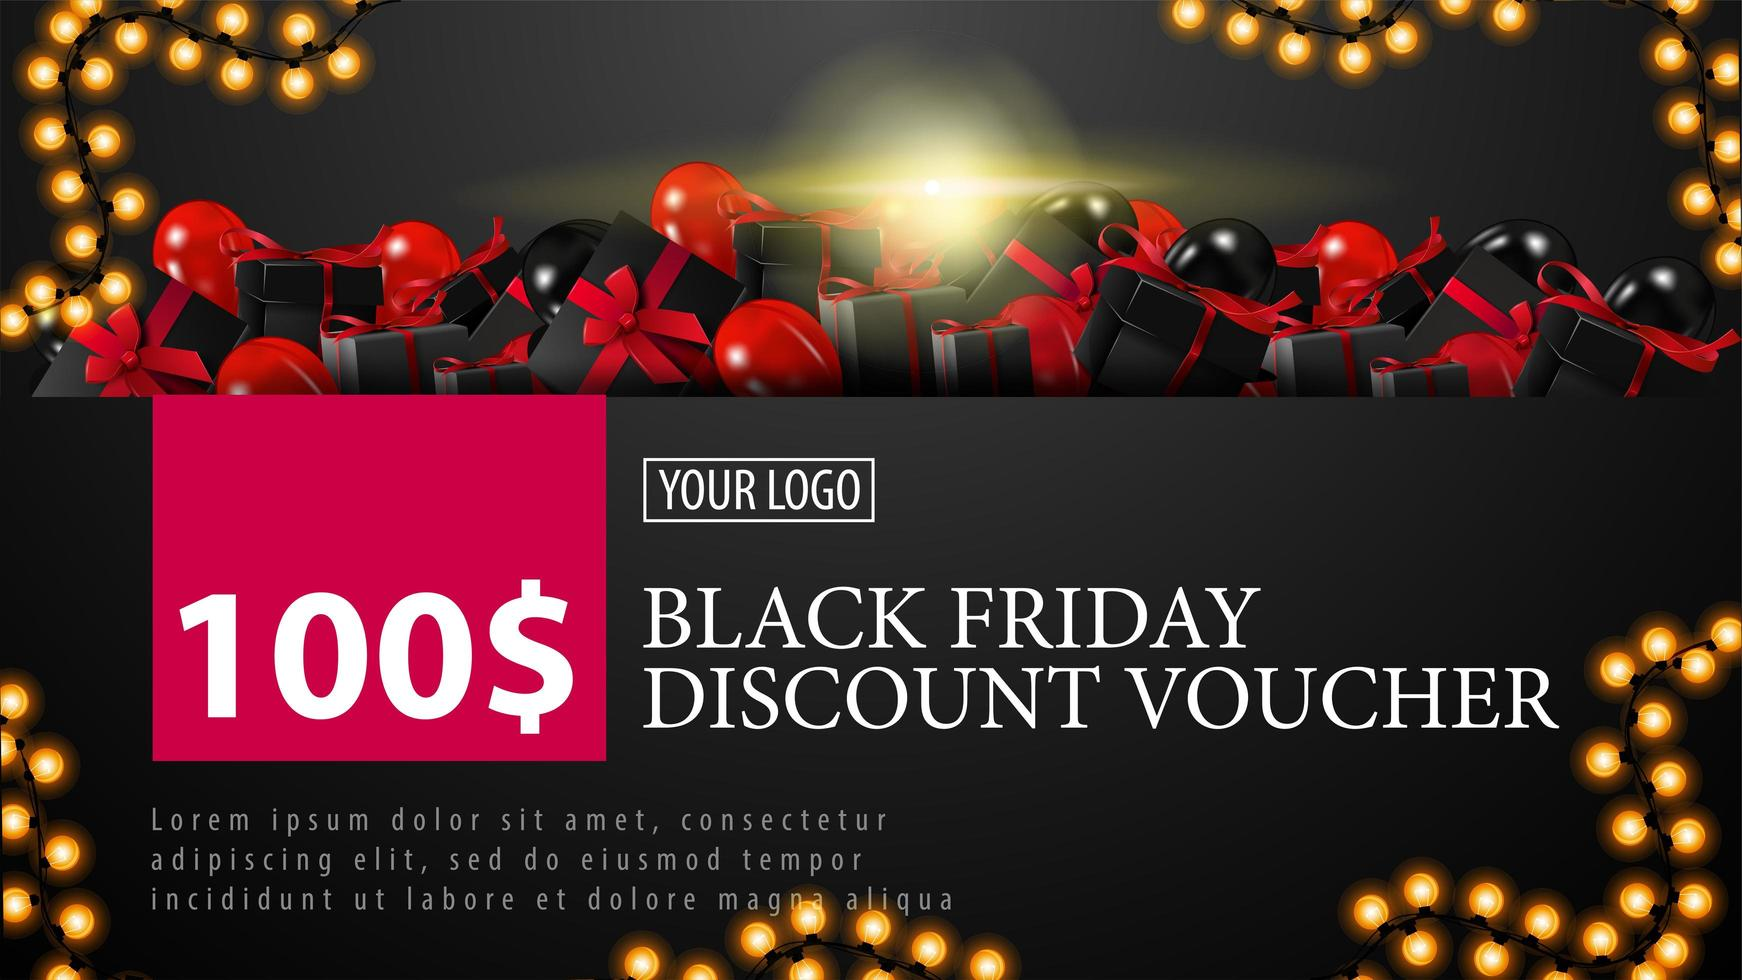 Black Friday Discount Voucher with garland frame vector